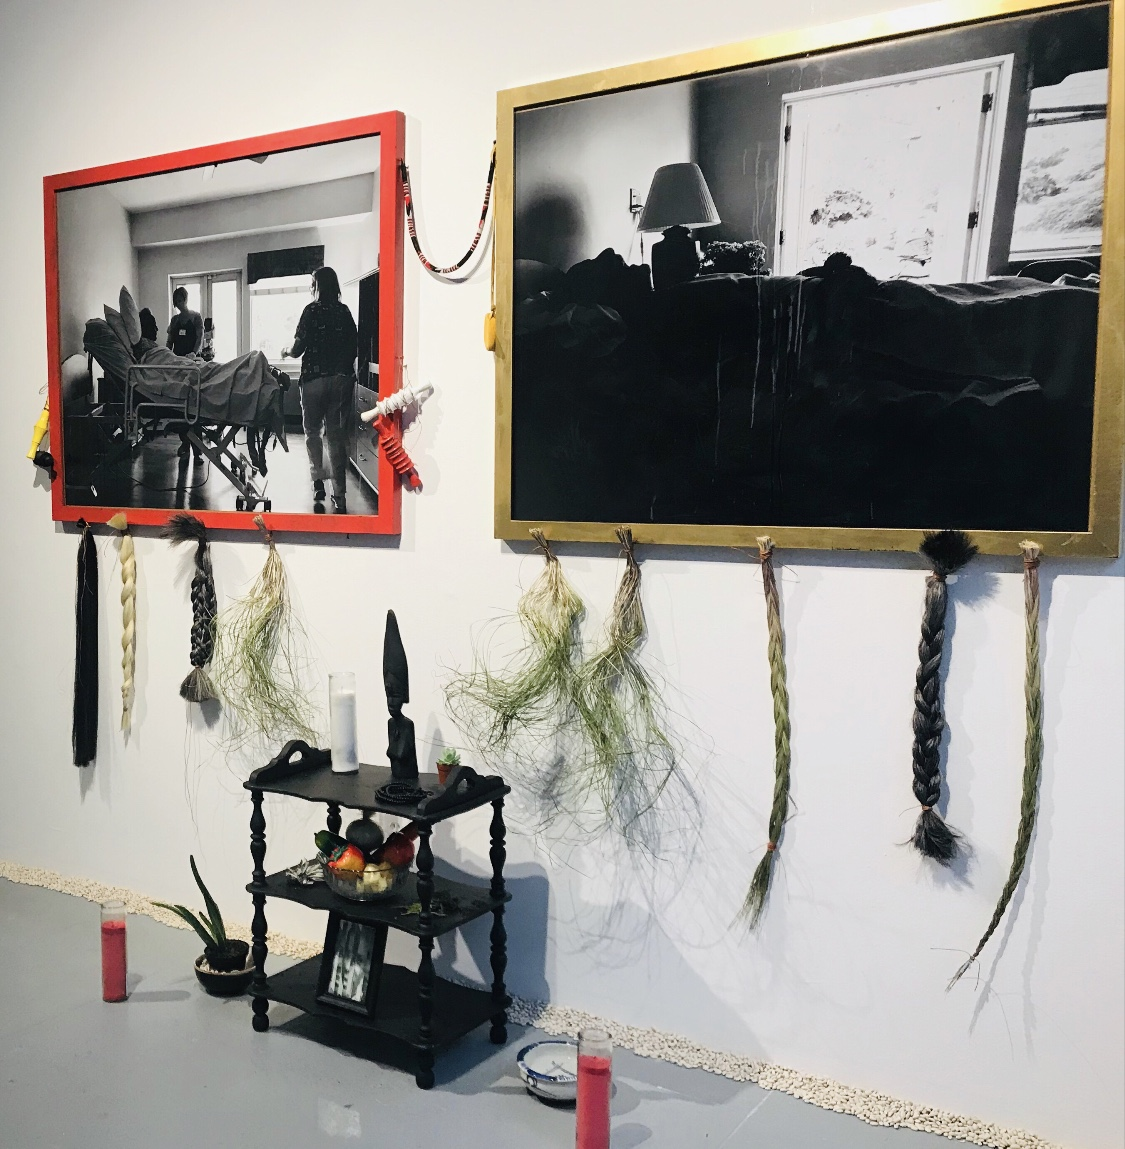 "Akhsó (Grandma): This Is A New Experience, 2019 & Skin Hunger/the Artist As Caregiver, 2018 - —Black & white iPhone image, printed on vinyl; mixed media construction—Sound Piece (originally published Anomaly, Issue 27)EFA PROJECT SPACE 3.27 thru 5.11This site specific intervention of the sacred examines the in-between; the before and after death through the experience of the artist's grandmother, Vivian Murphy. In her own words knowing ""you're about to pass away"" is a new experience. Here, the artist explores the intersections of race, class, gender and the possible meanings associated with the taking of a last breath in a black or brown body aged almost a century in a constructed environment that renders harm through invisibility. Closing out the life you have lived in your raced and gendered body is a ceremony of becoming—a return to human being."